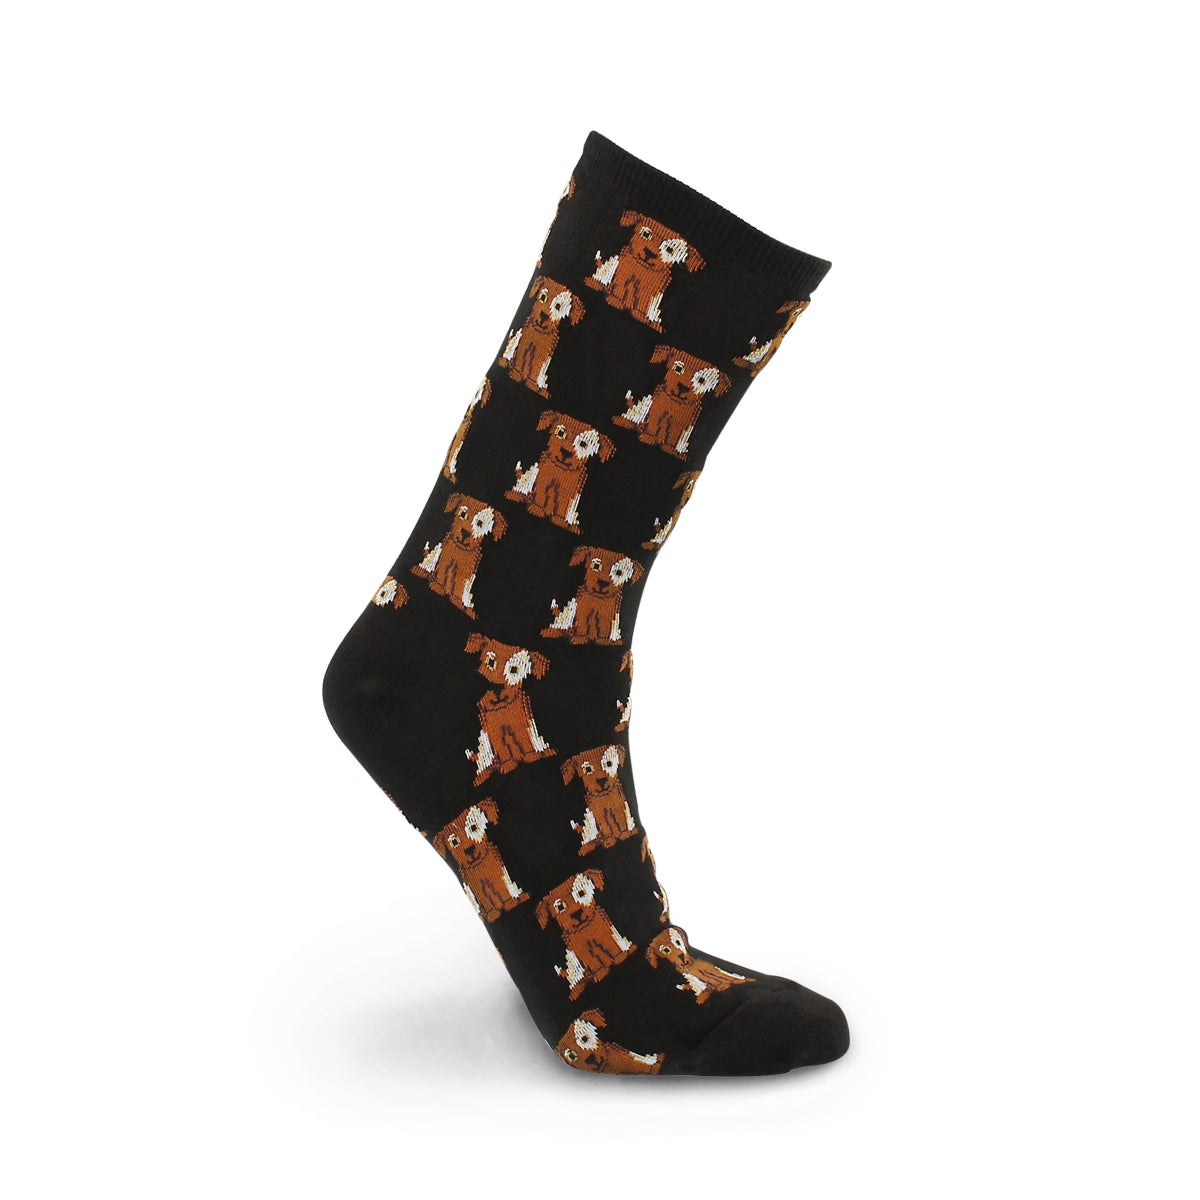 Lds Dogs black/brown printed sock